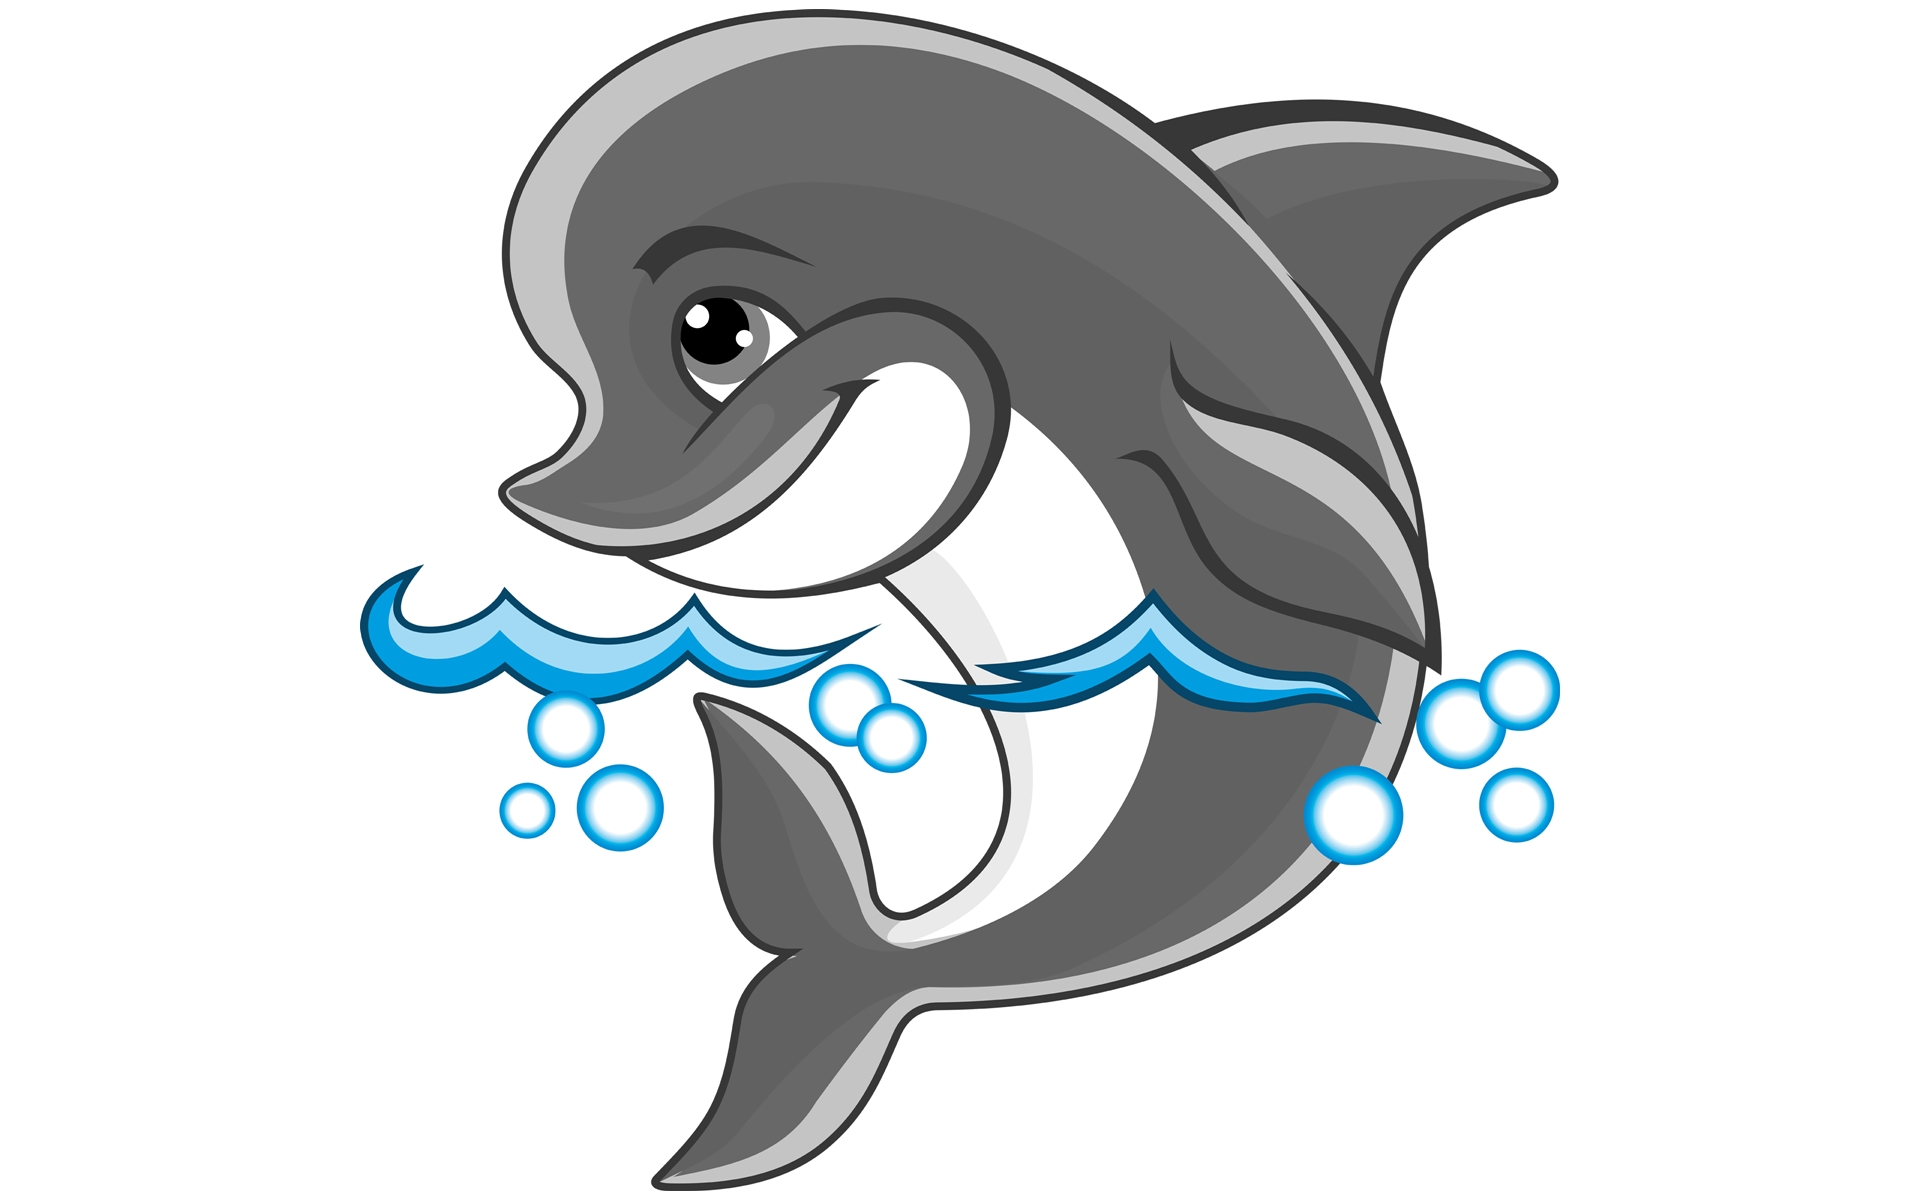 Free cartoon images download. Dolphin clipart cute anime